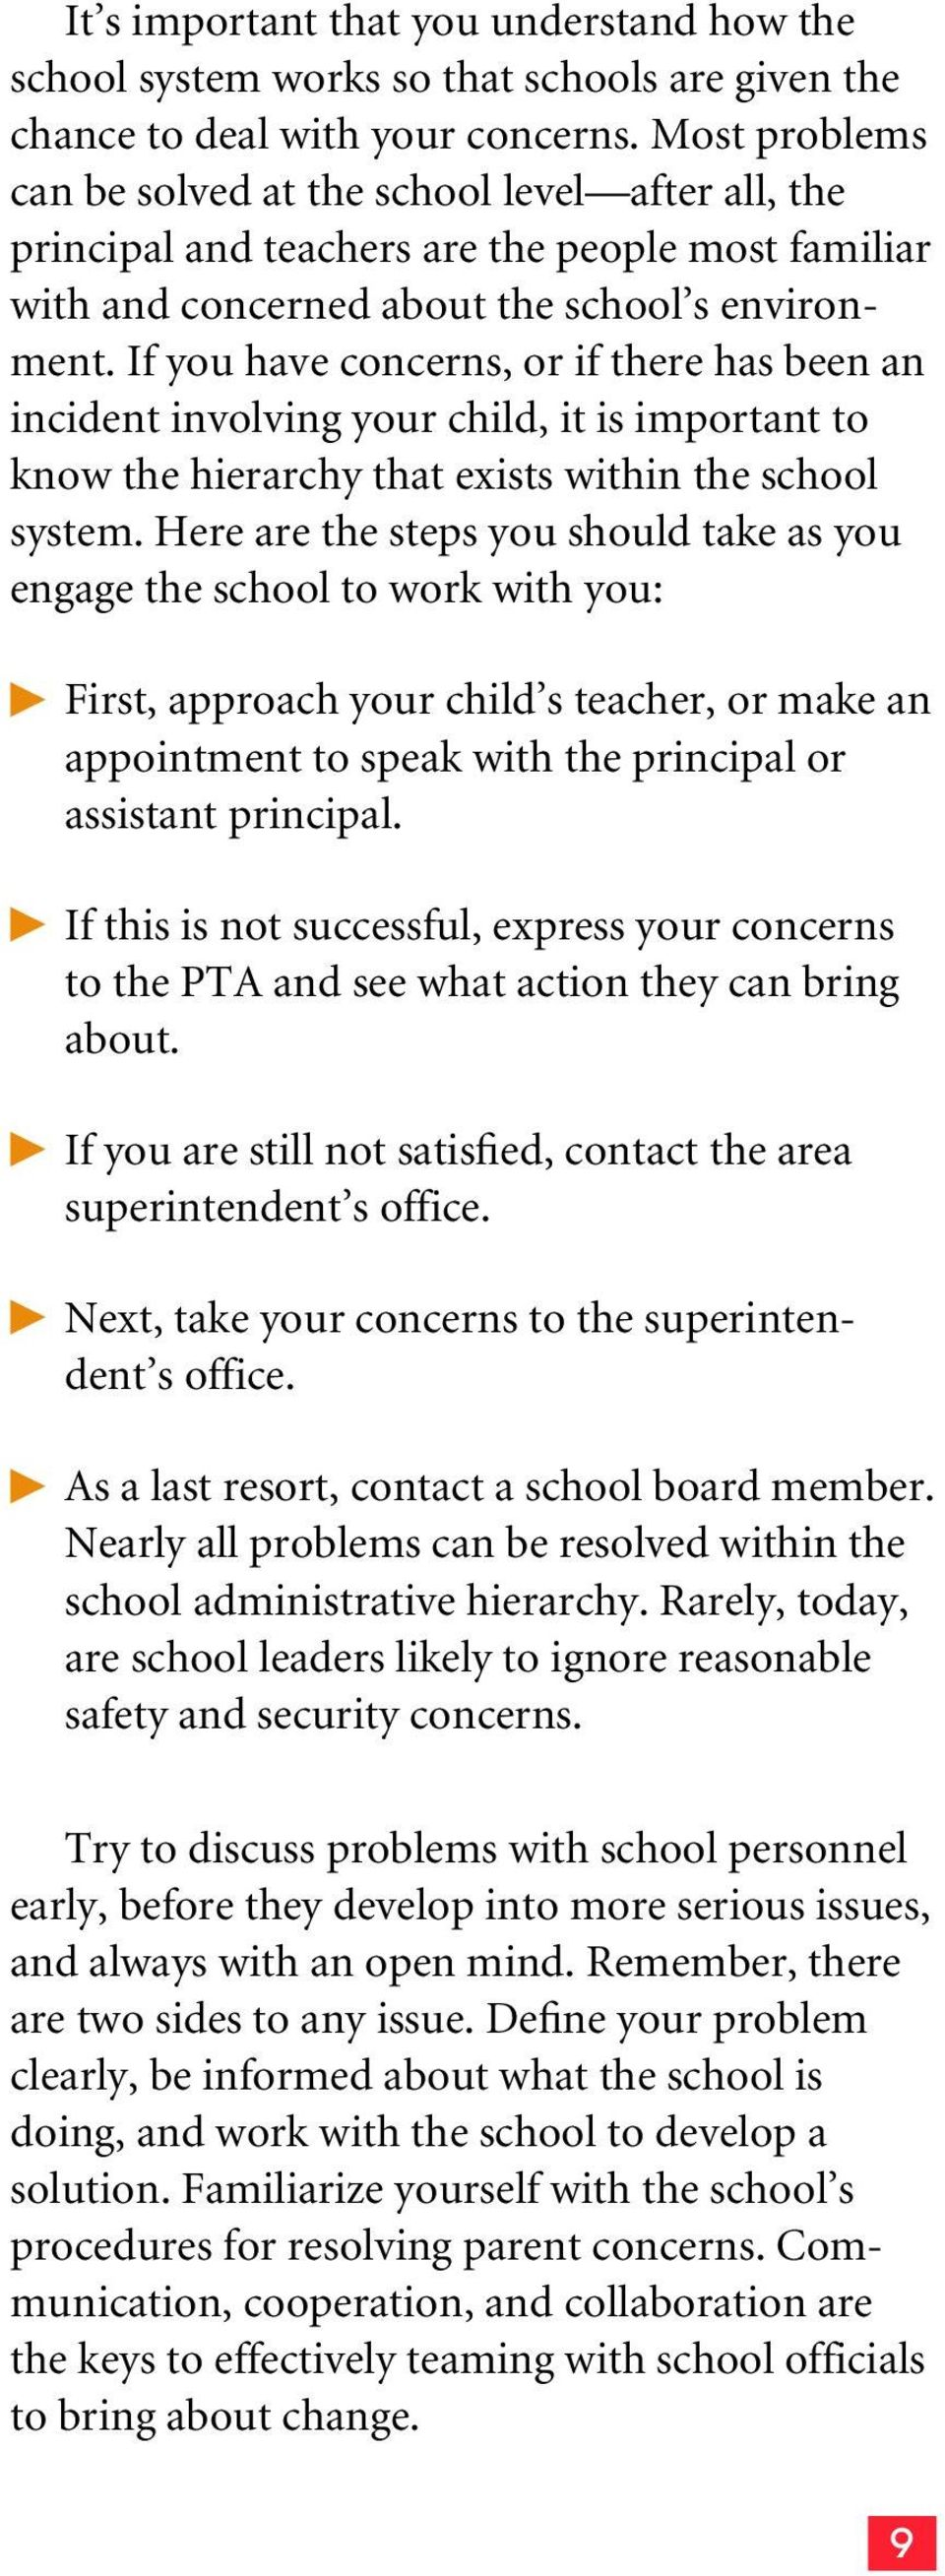 If you have concerns, or if there has been an incident involving your child, it is important to know the hierarchy that exists within the school system.